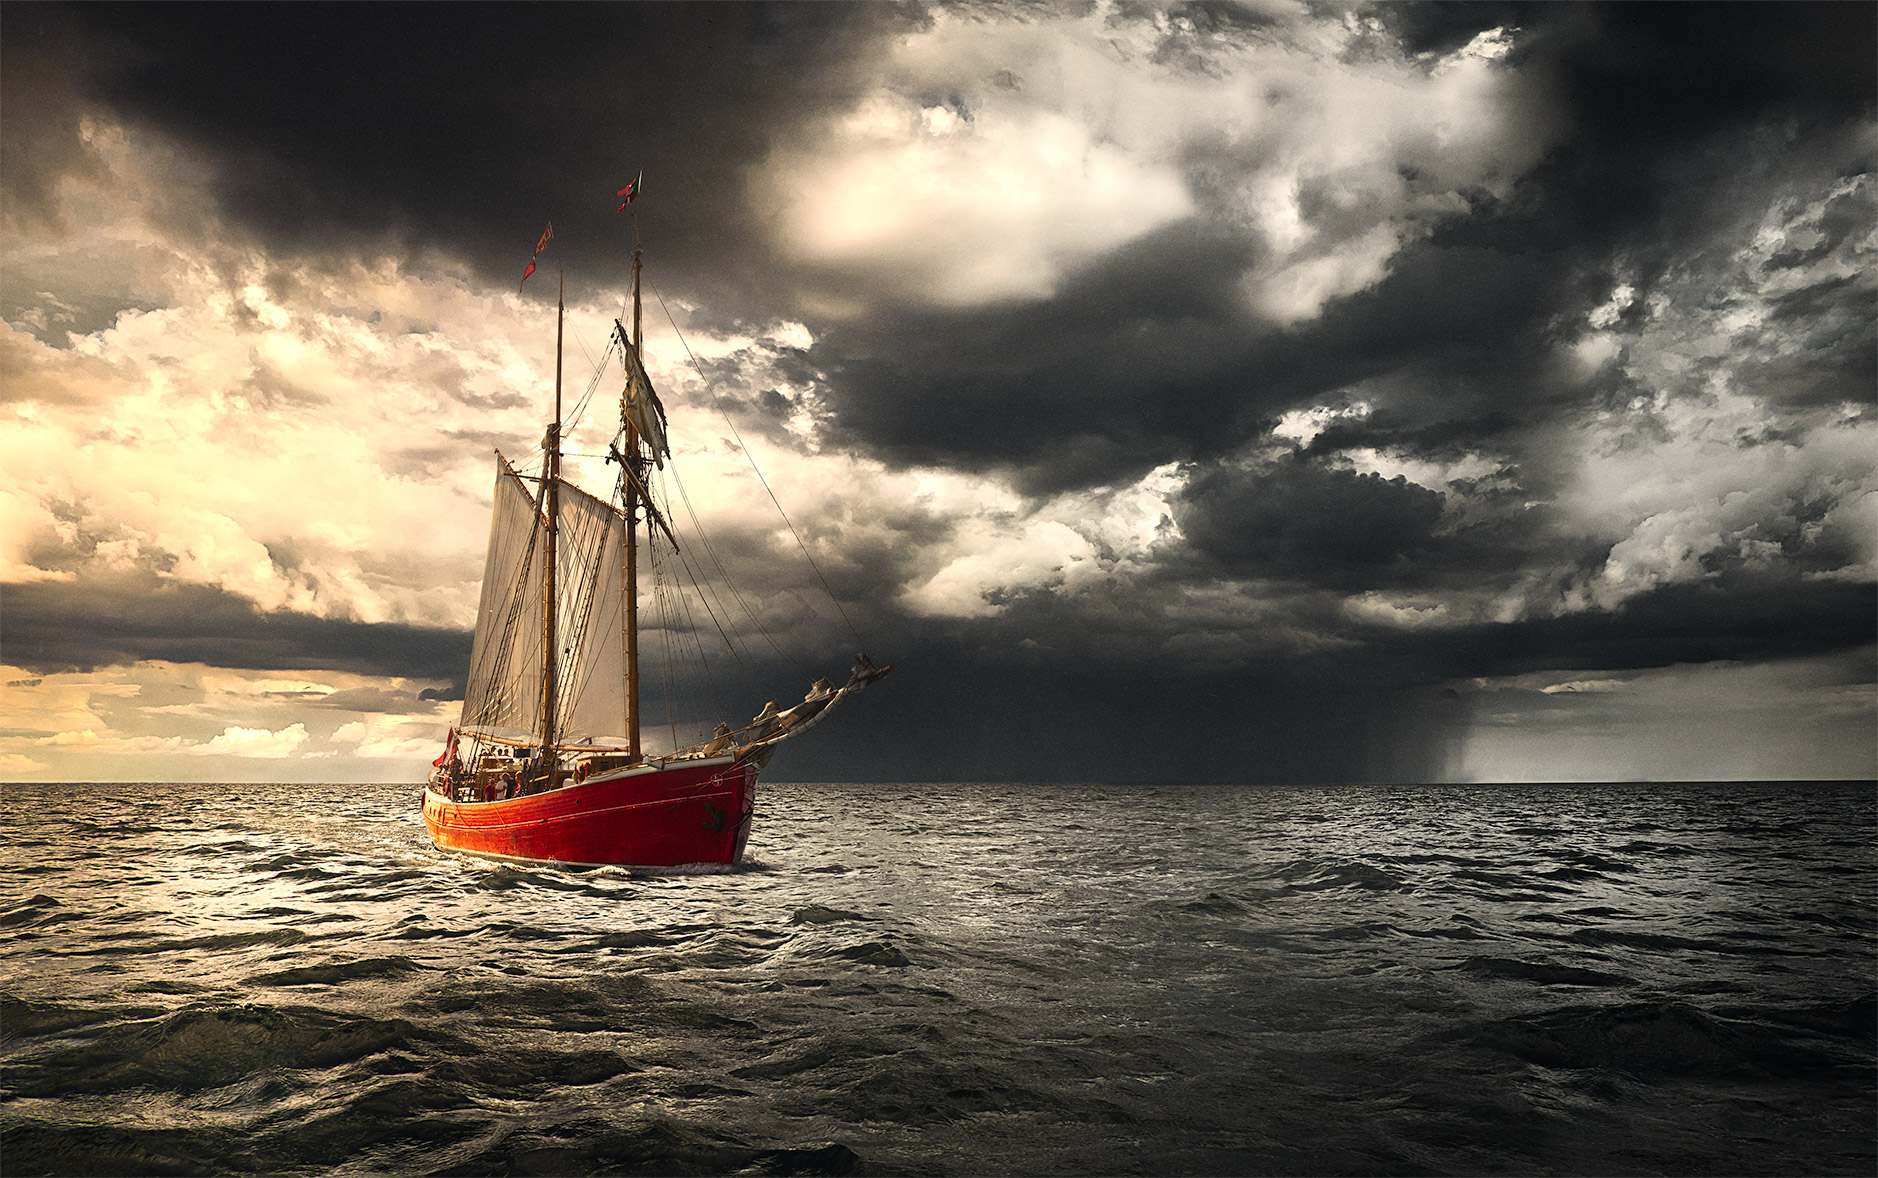 """Storm is Coming"" seascape photography of a Red ship near a storm"